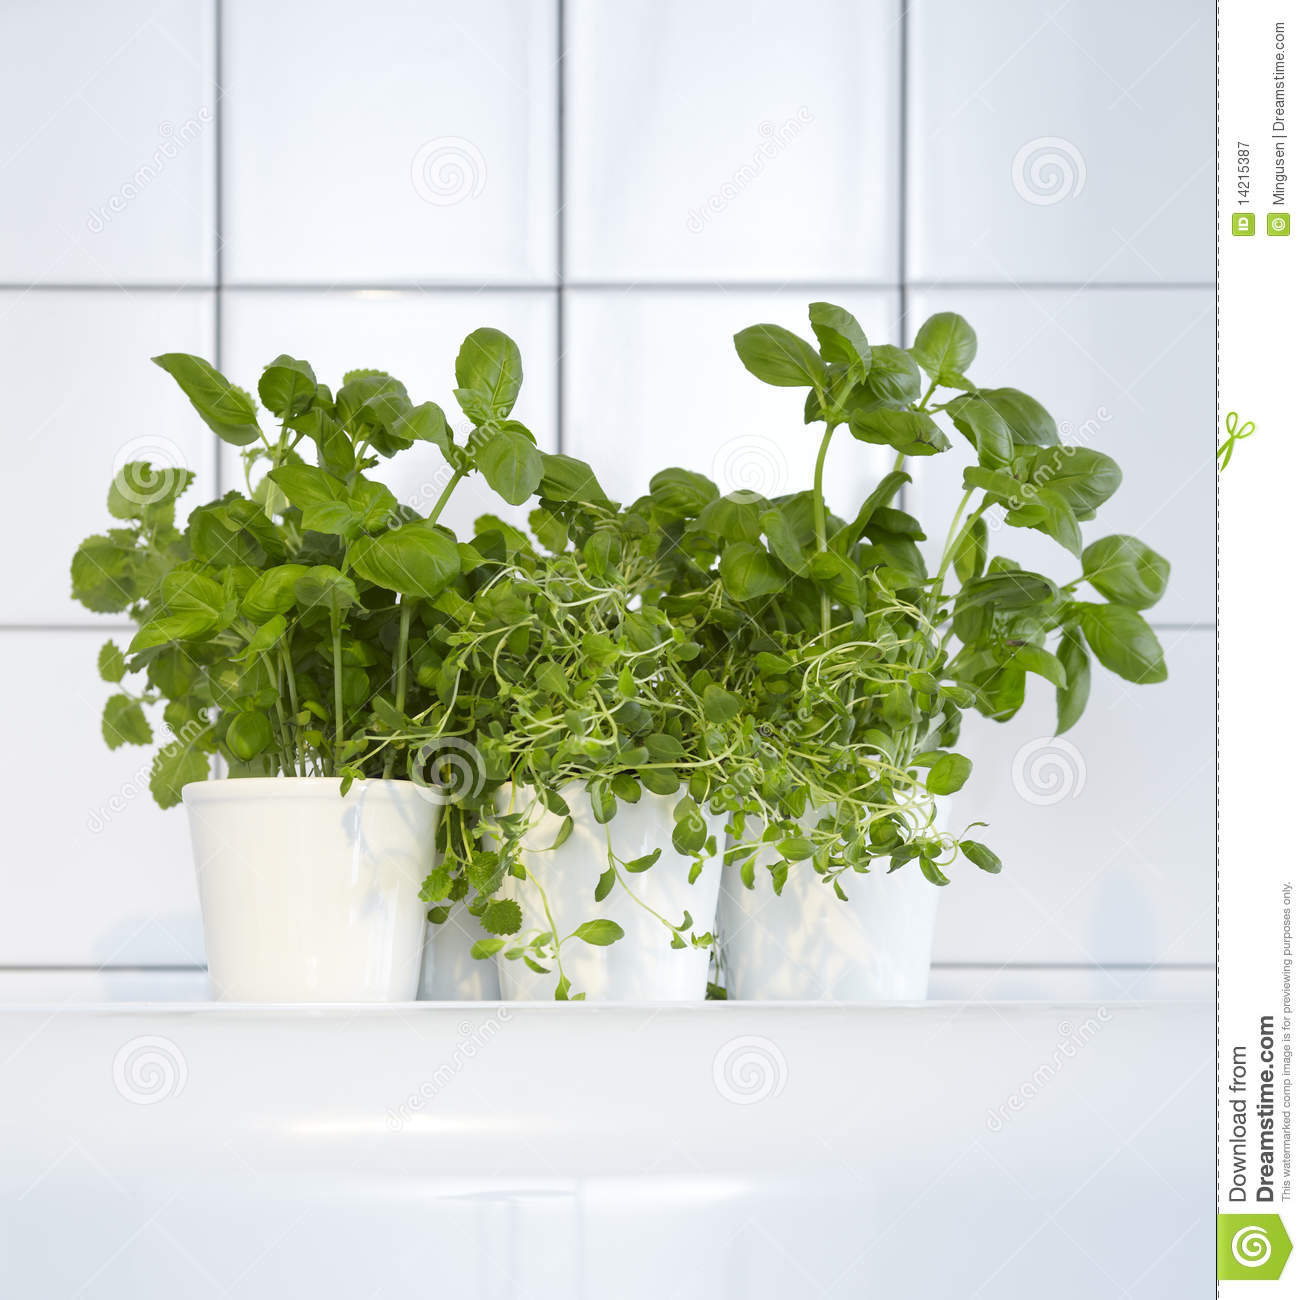 Herb Pots Kitchen Fresh Herbs In Kitchen Stock Image Image Of Basil